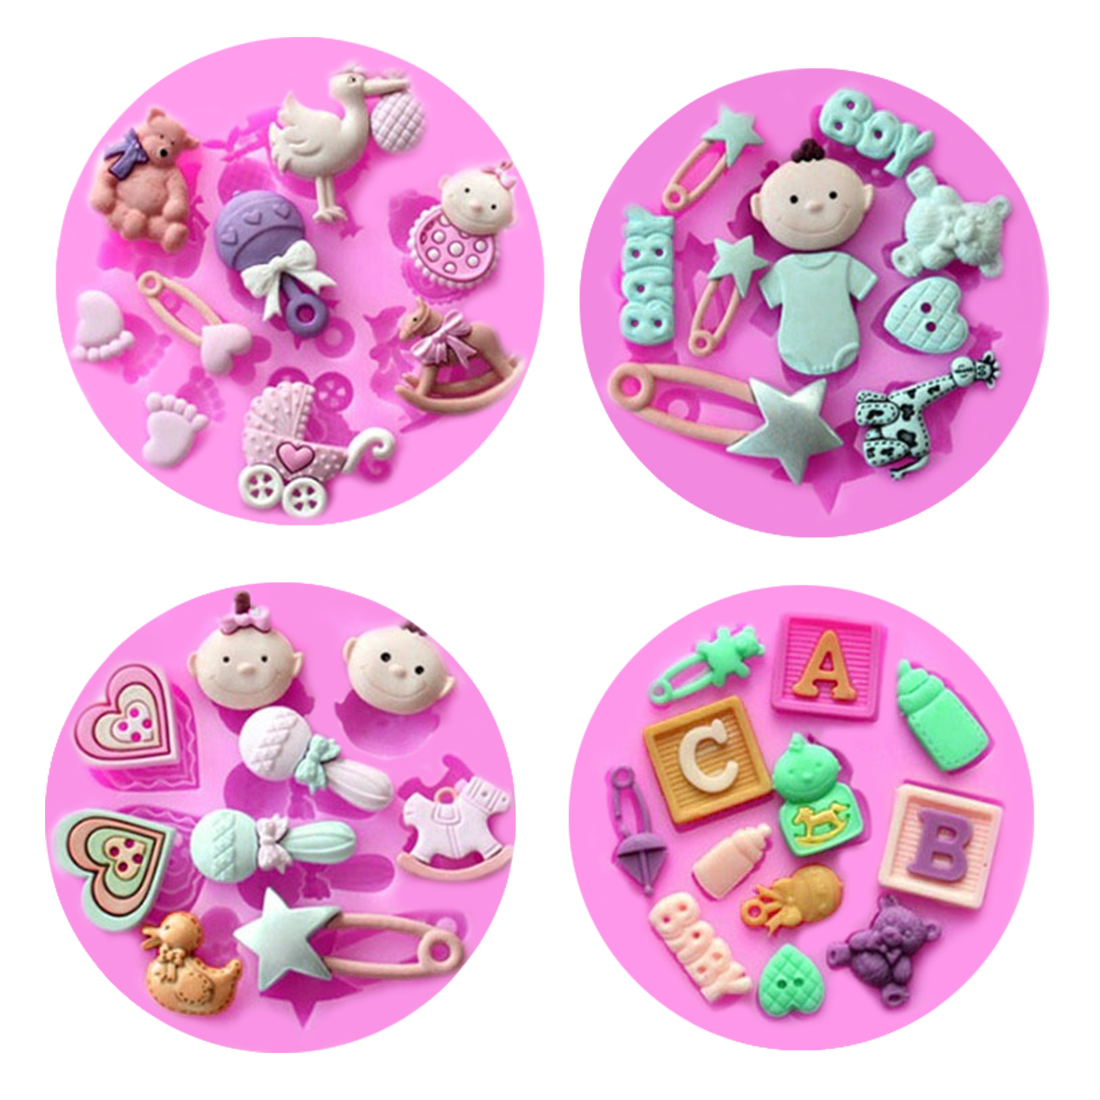 1PC Silicone Mold Baby Theme Baby Carriage Baking Pan Cake Decorating Tools Chocolate Soap Mold Cake Stencils Kitchen DIY Tool